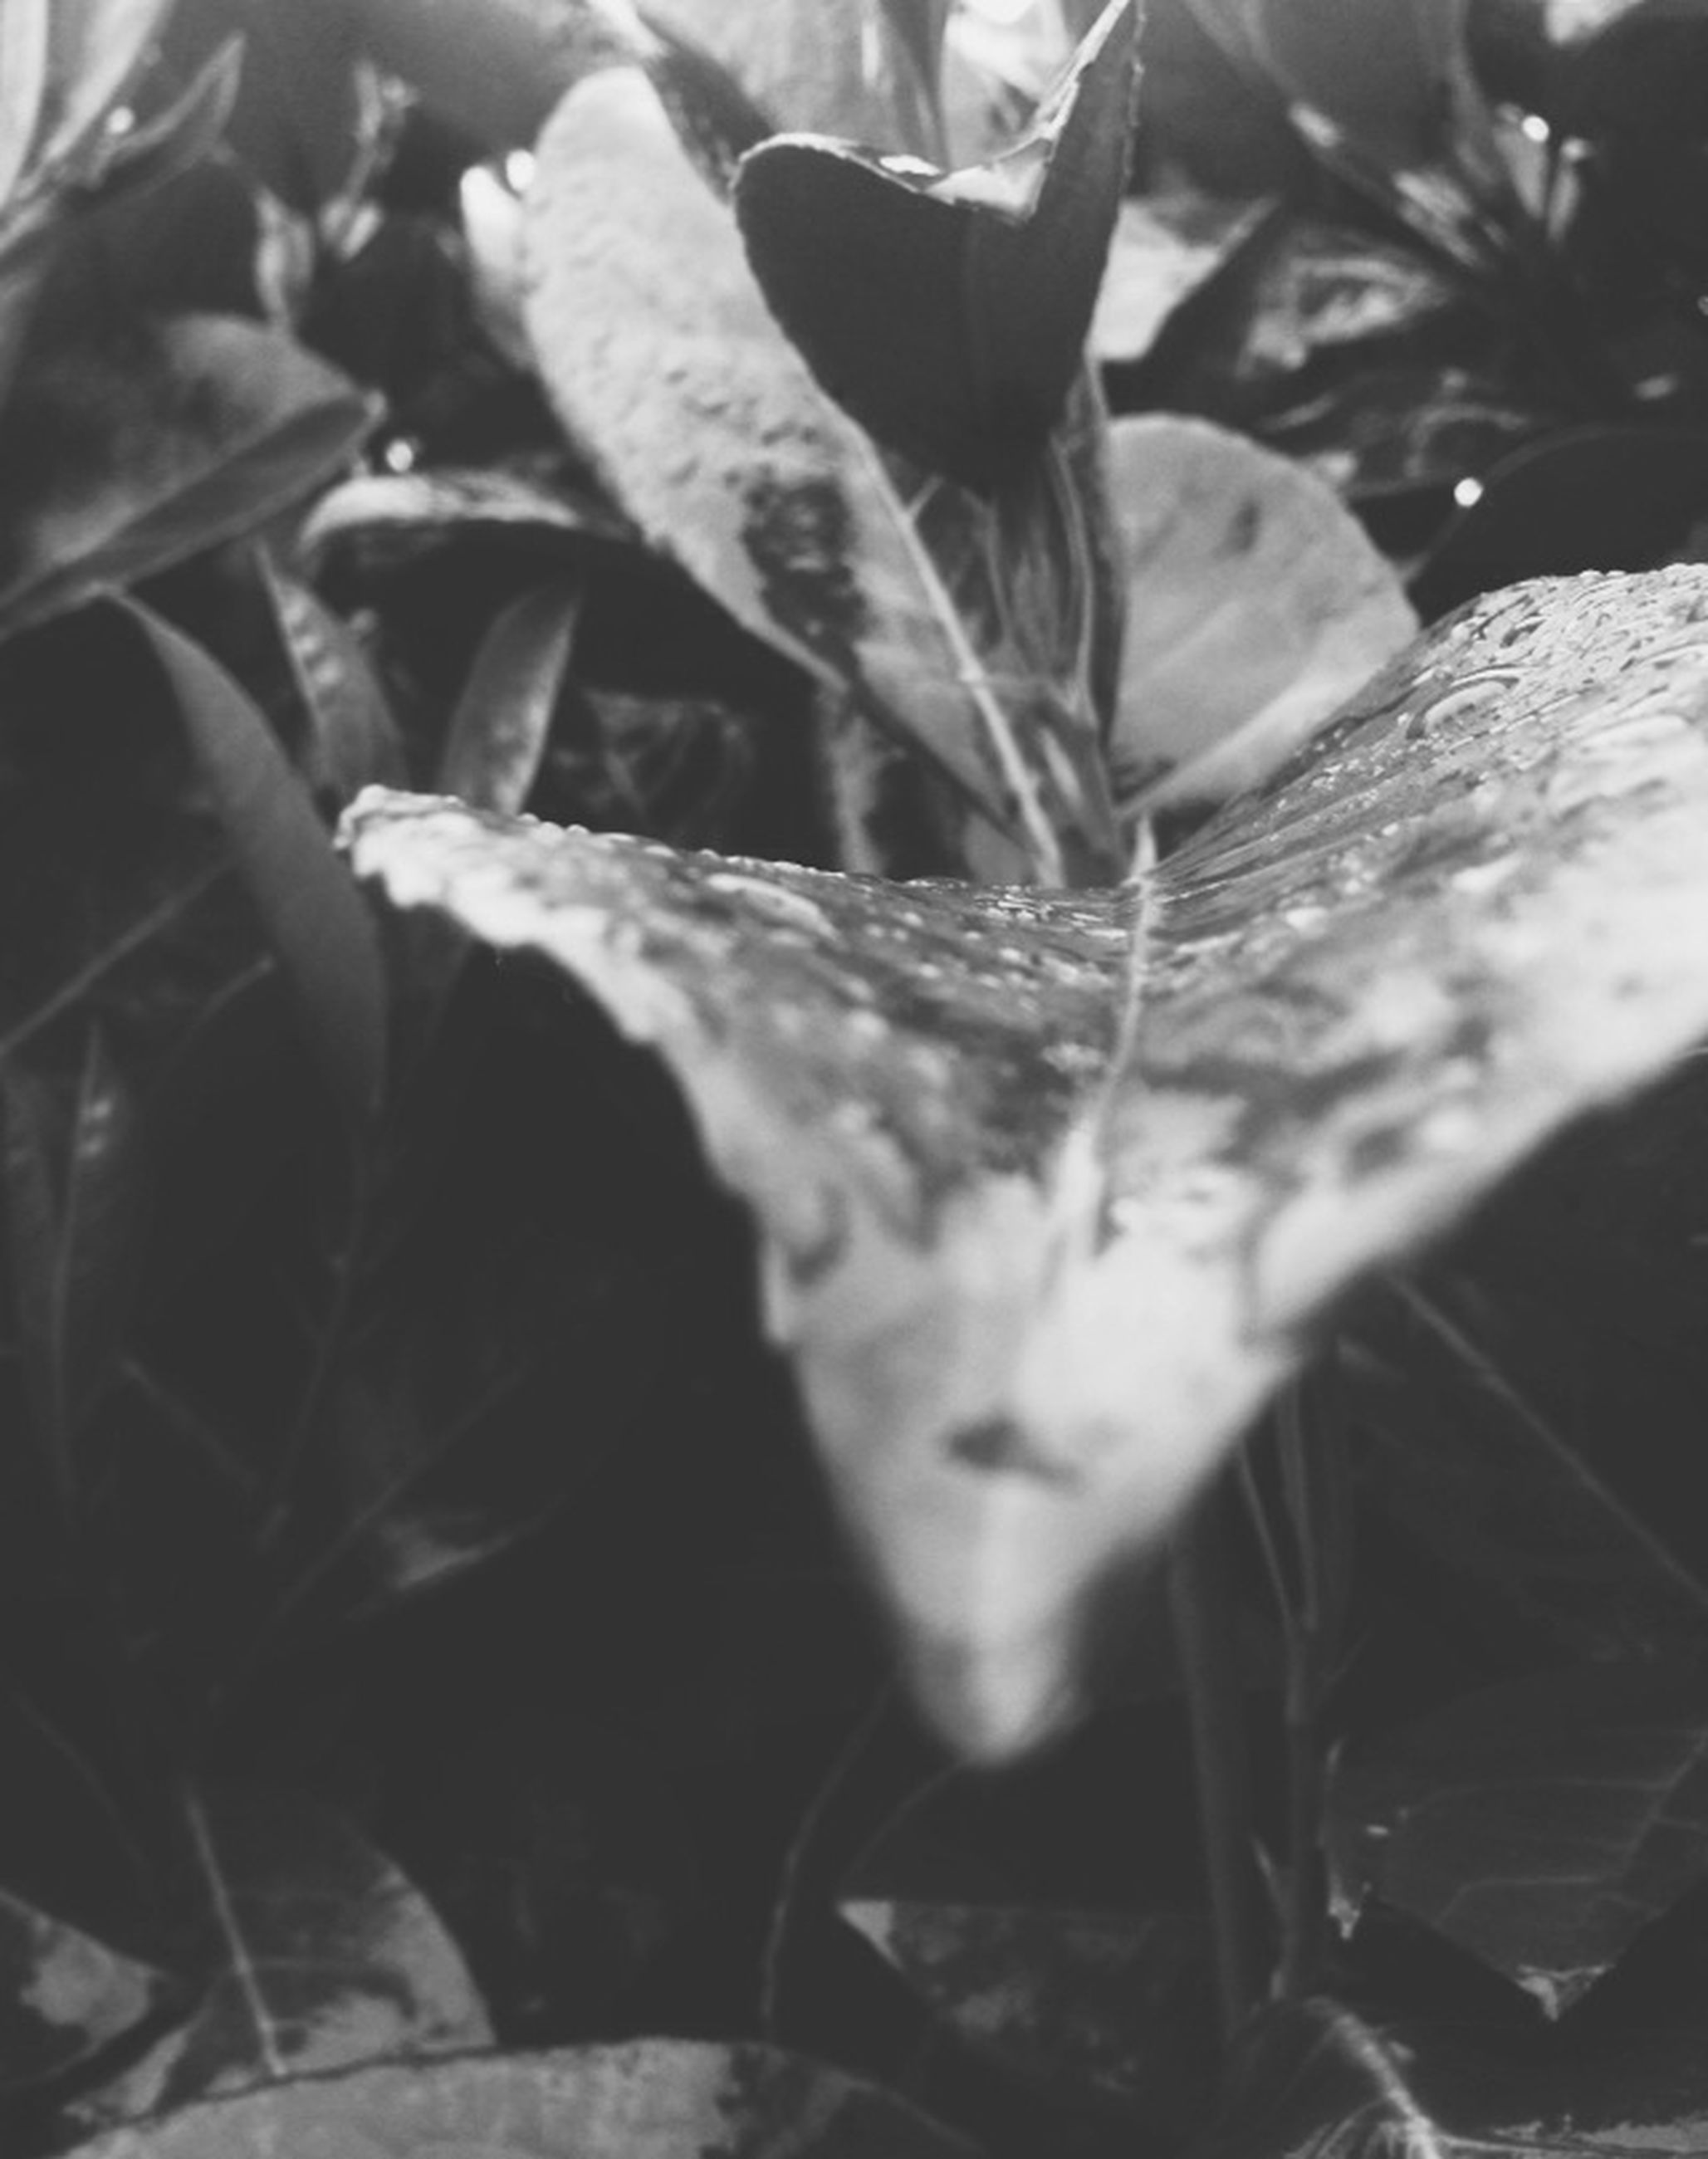 close-up, leaf, growth, plant, fragility, freshness, selective focus, nature, beauty in nature, focus on foreground, flower, petal, no people, drop, water, day, botany, wet, stem, outdoors